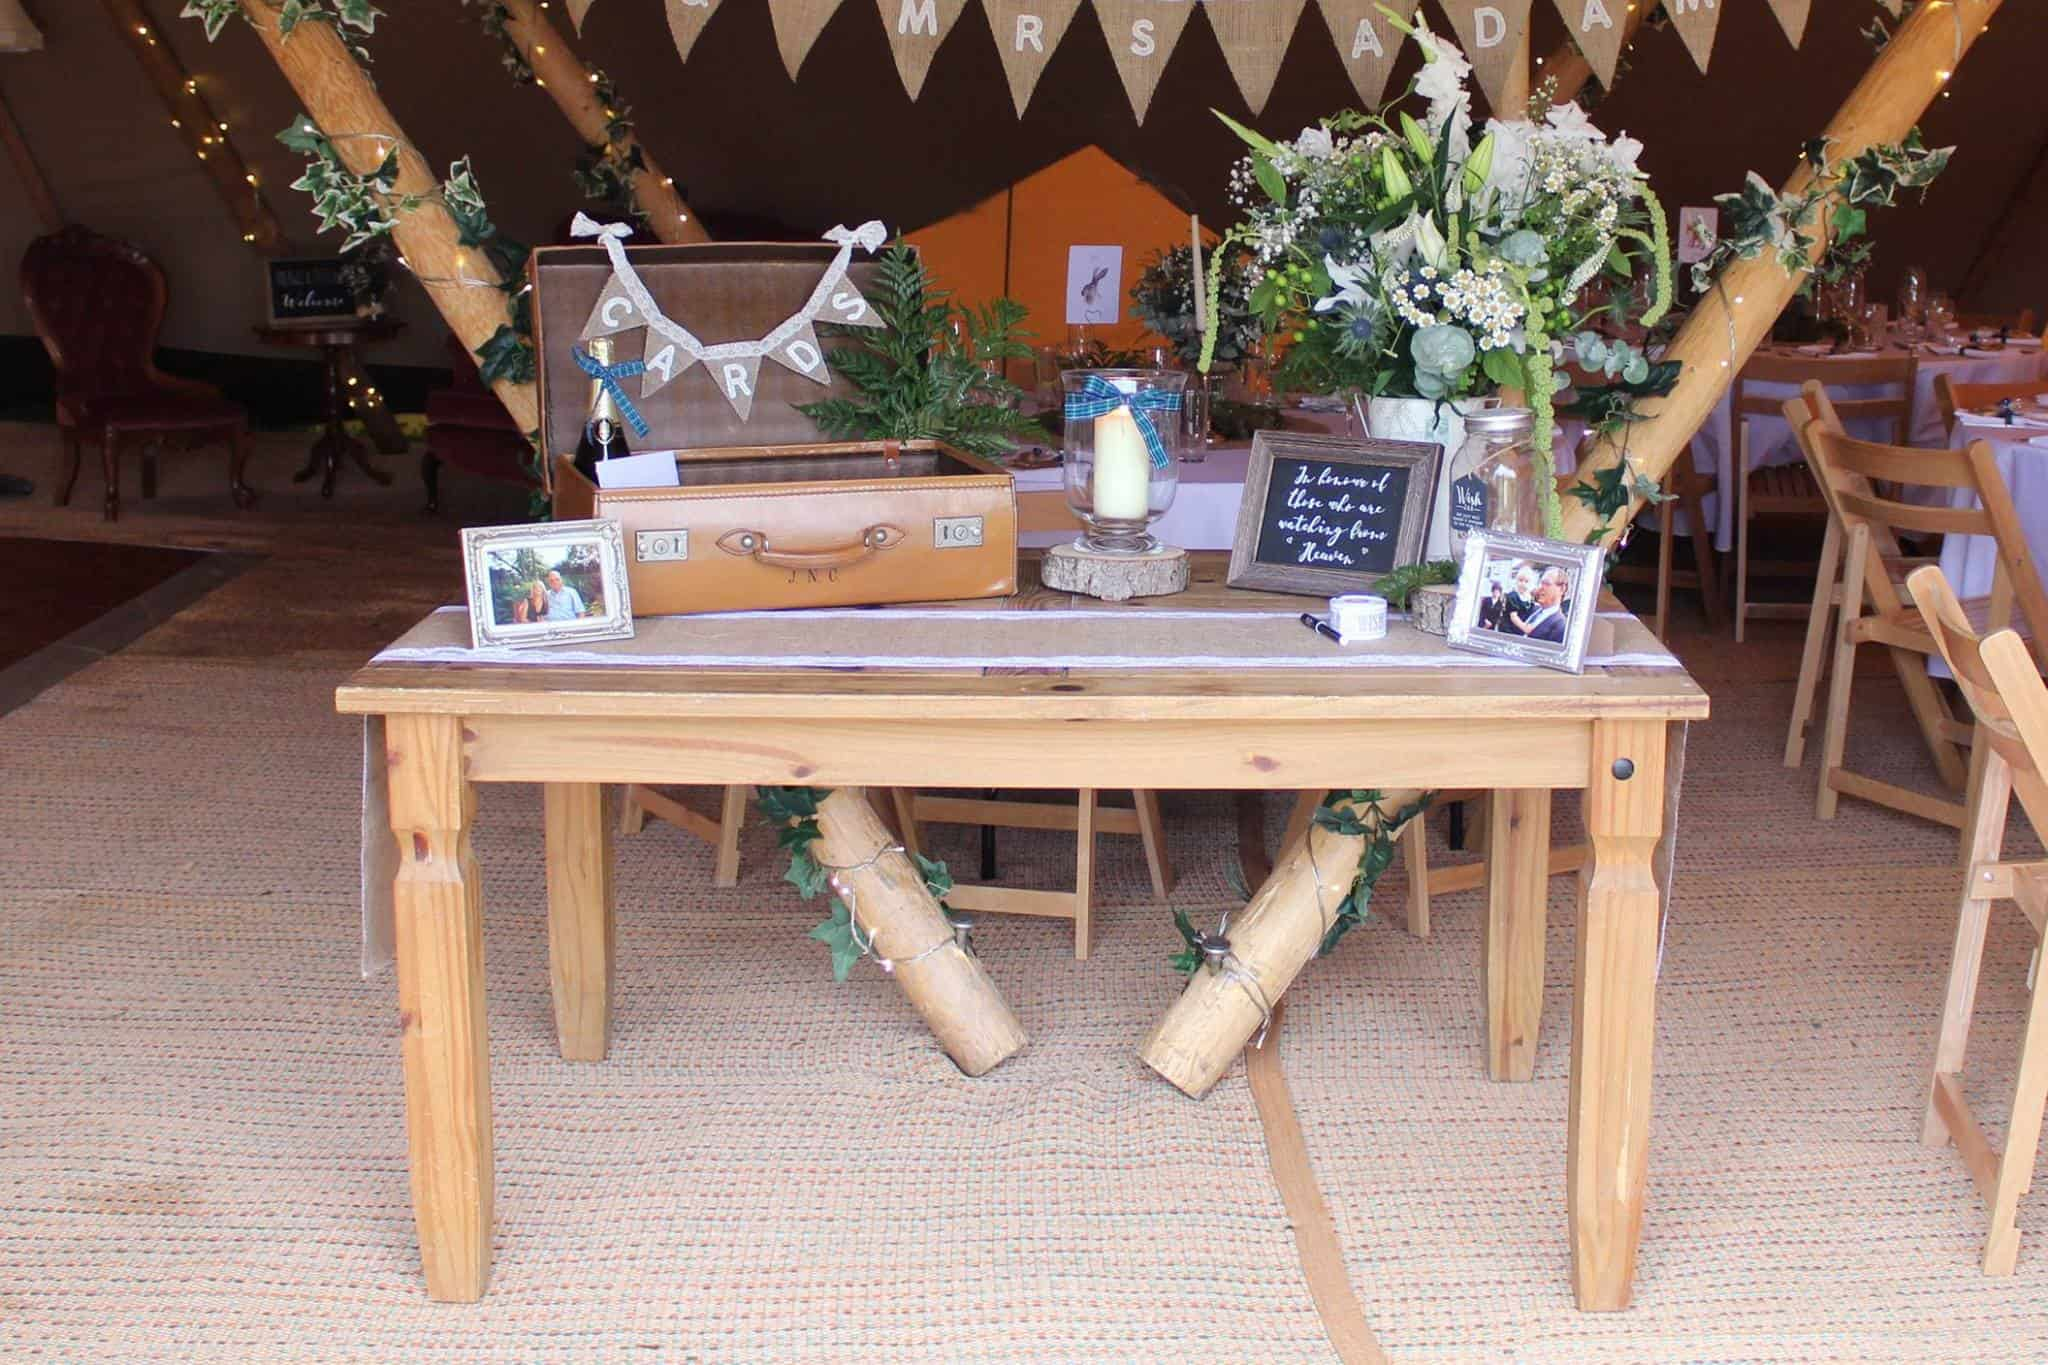 Card Table - Woodland themed styling by The Rustic Wedding Company